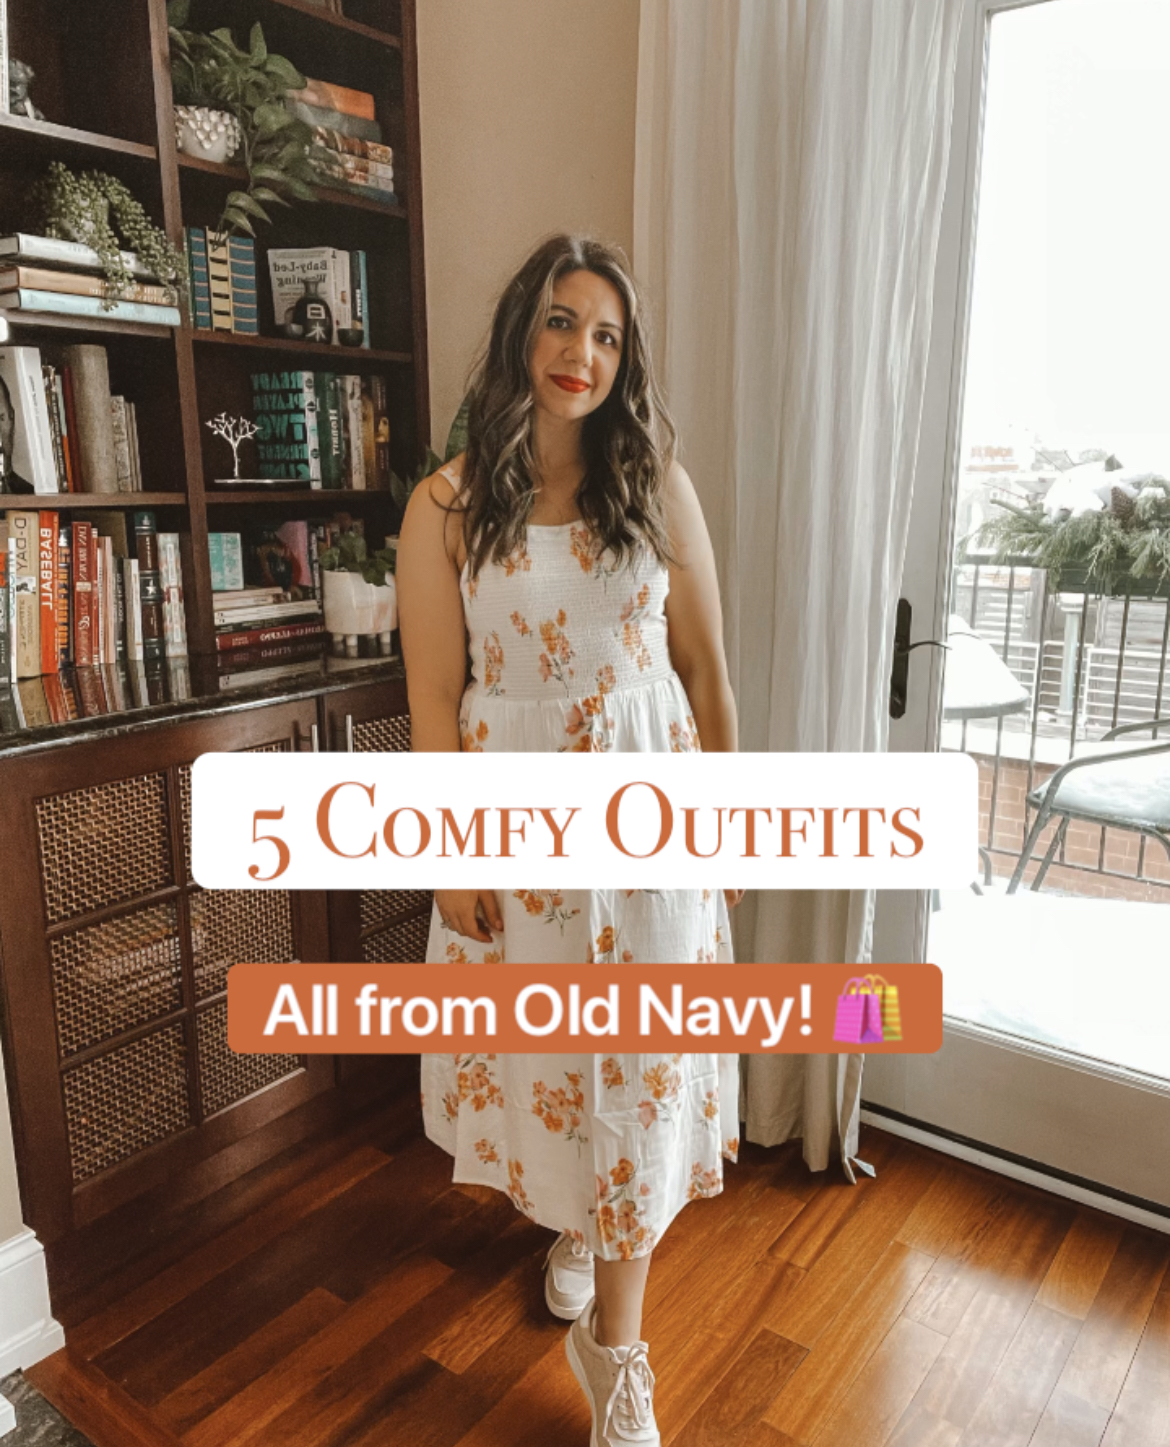 Spring Outfits from Old Navy by popular Chicago fashion blog, Glass of Glam: Pinterest image of a woman wearing a orange and white floral dress from Old Navy.